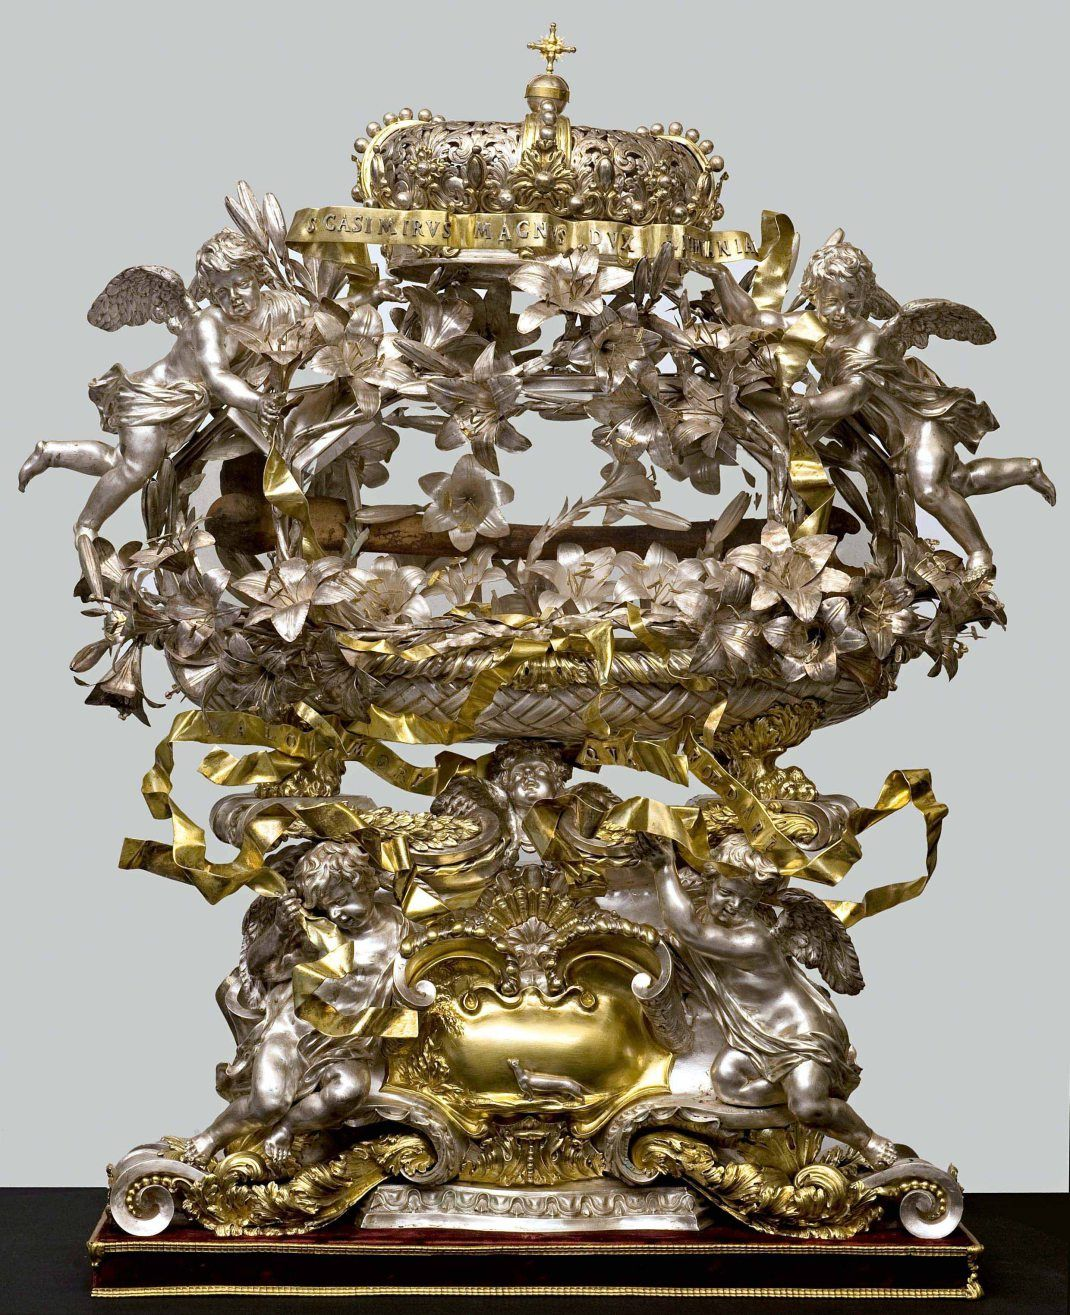 Massimiliano Soldani Benzi (Montevarchi, 1656 – Galatrona, 1740), Reliquary of St. Casimir, 1687-1688; repoussé, chased, engraved, partly gilded silver, some parts cast. Firenze, Museo delle Cappelle Medici.